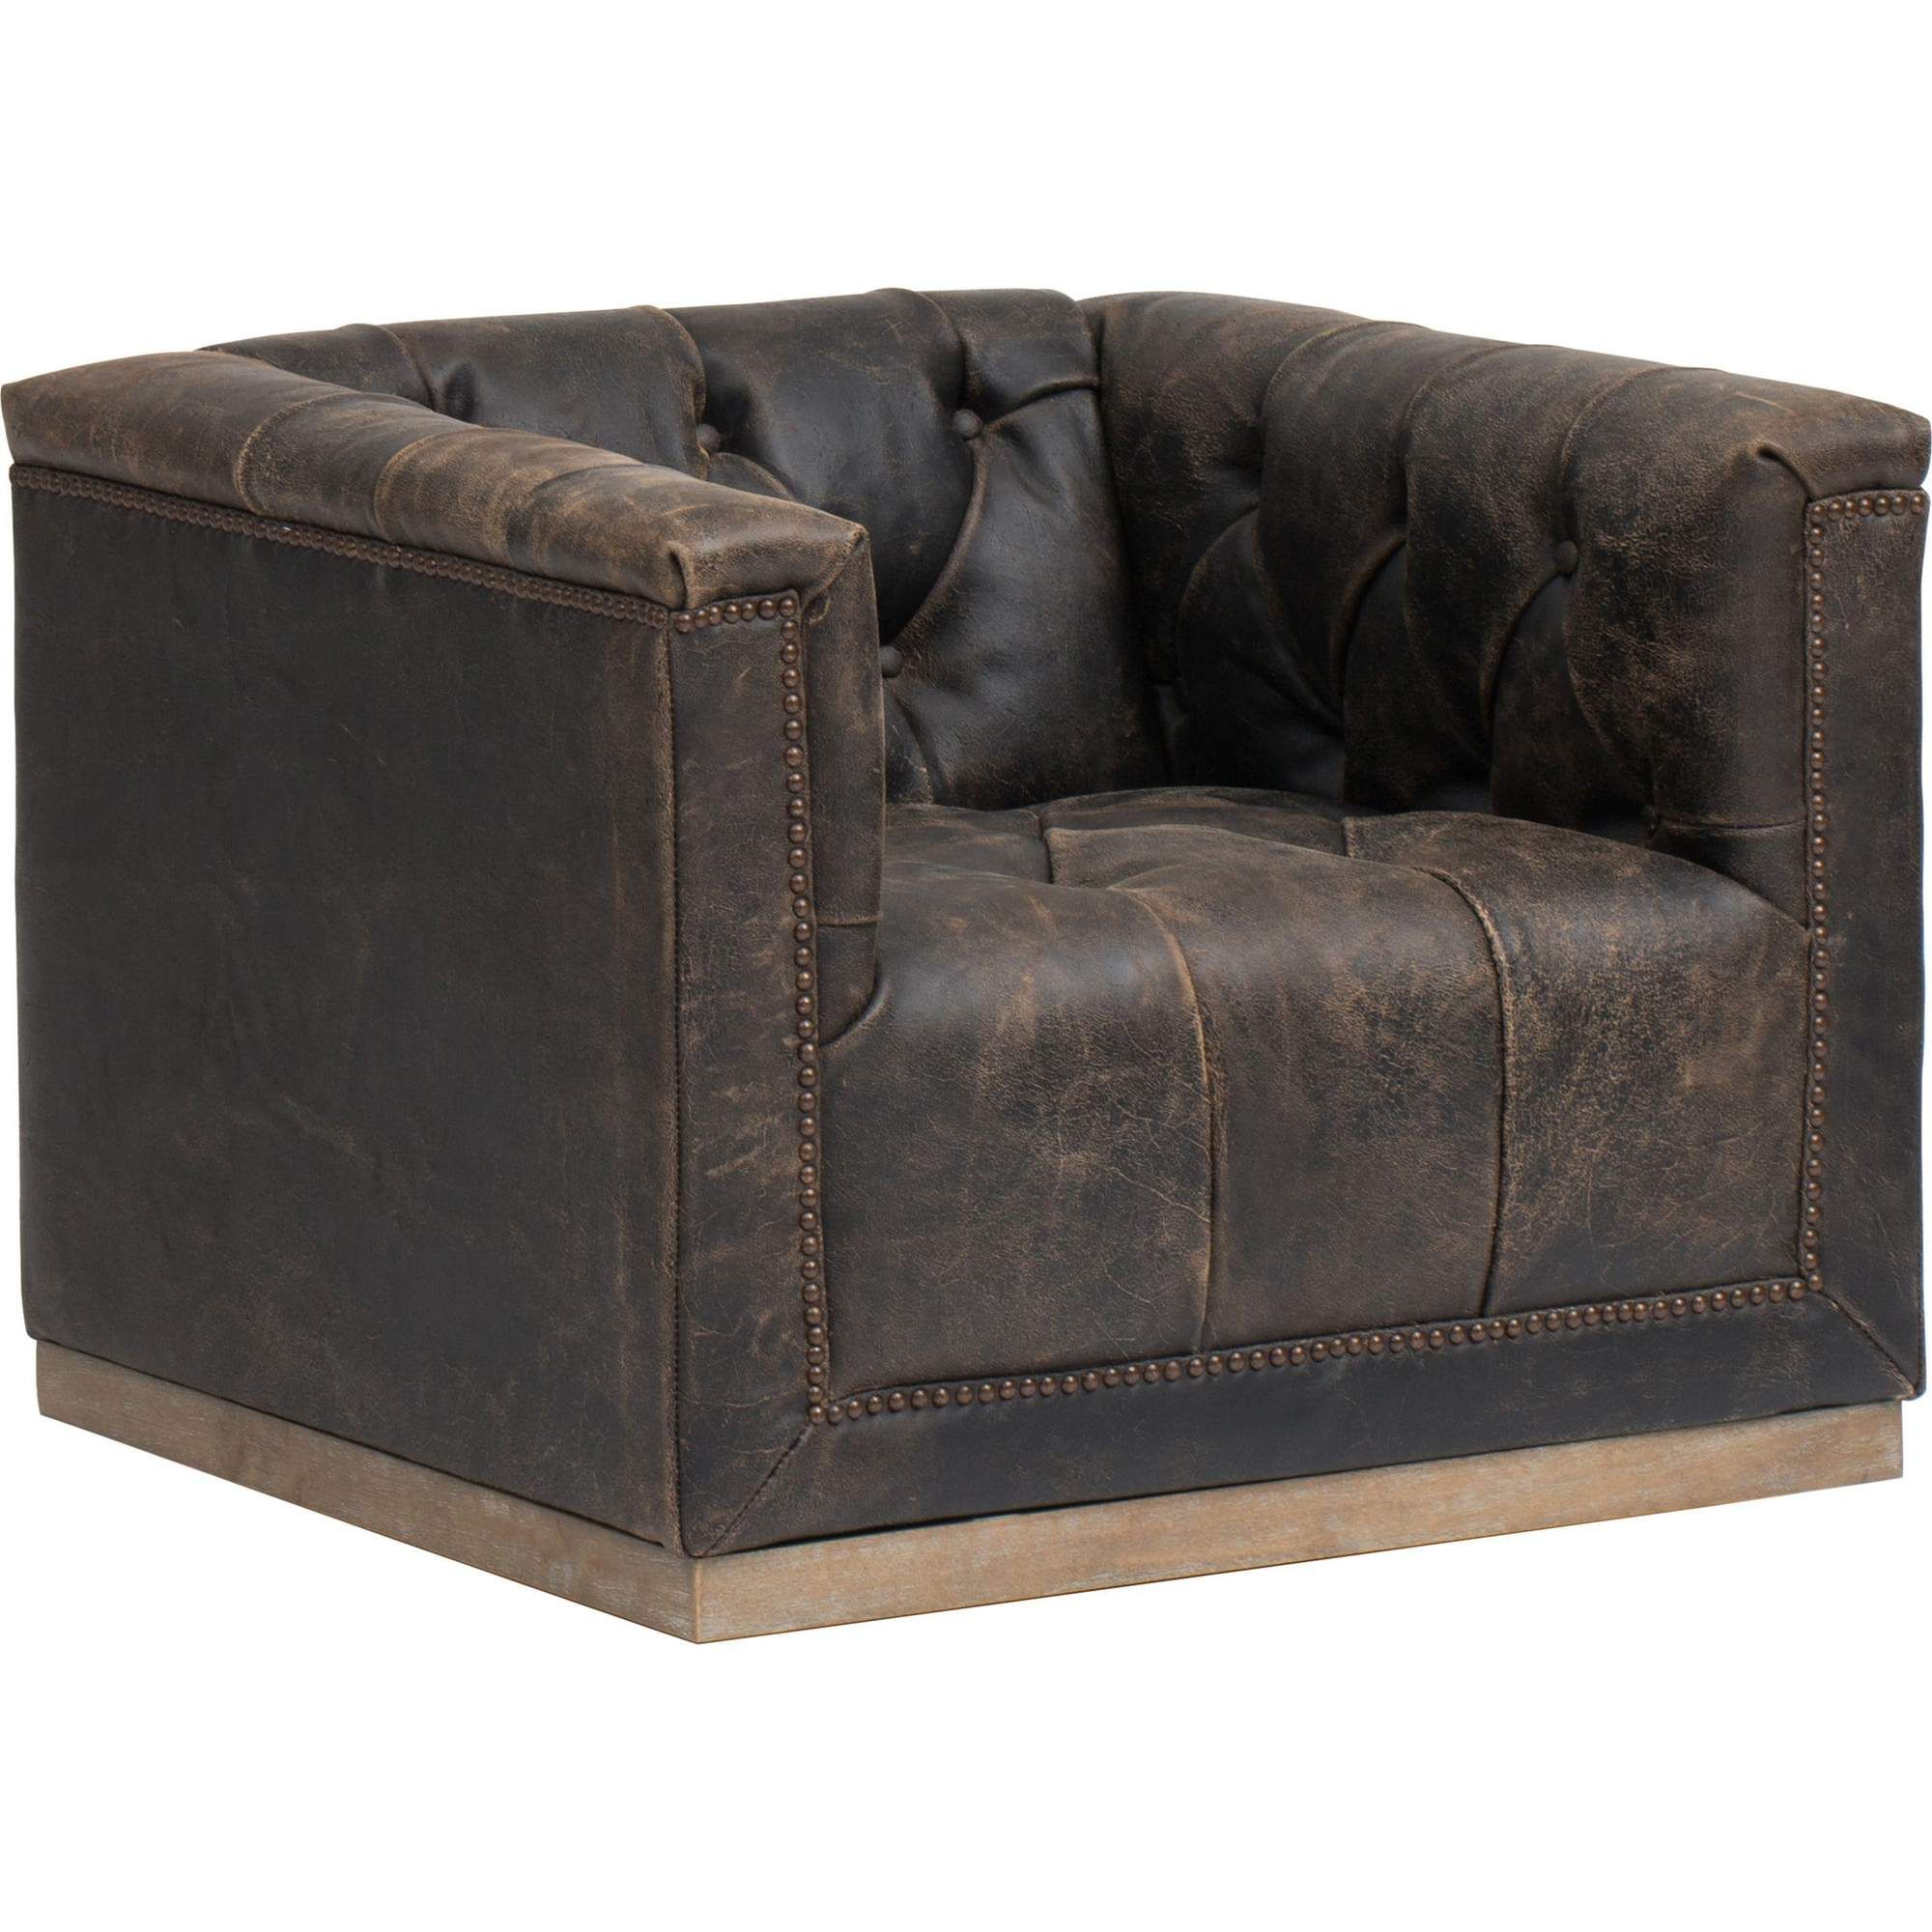 Maxx Leather Swivel Chair, Destroyed Black in 2020